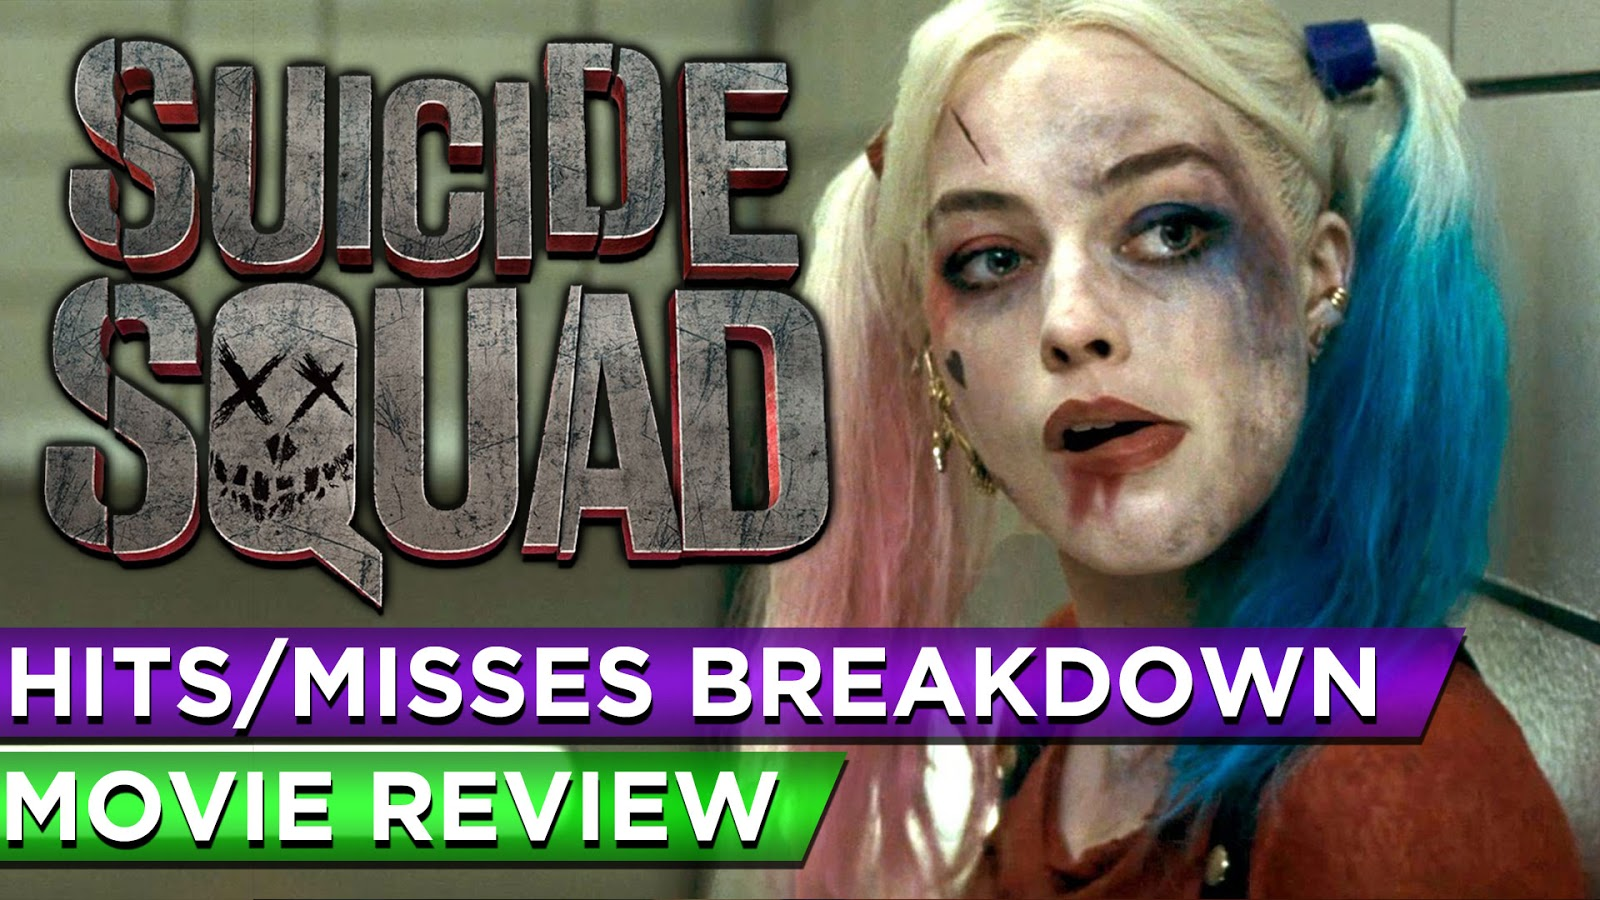 movie review Suicide Squad podcast